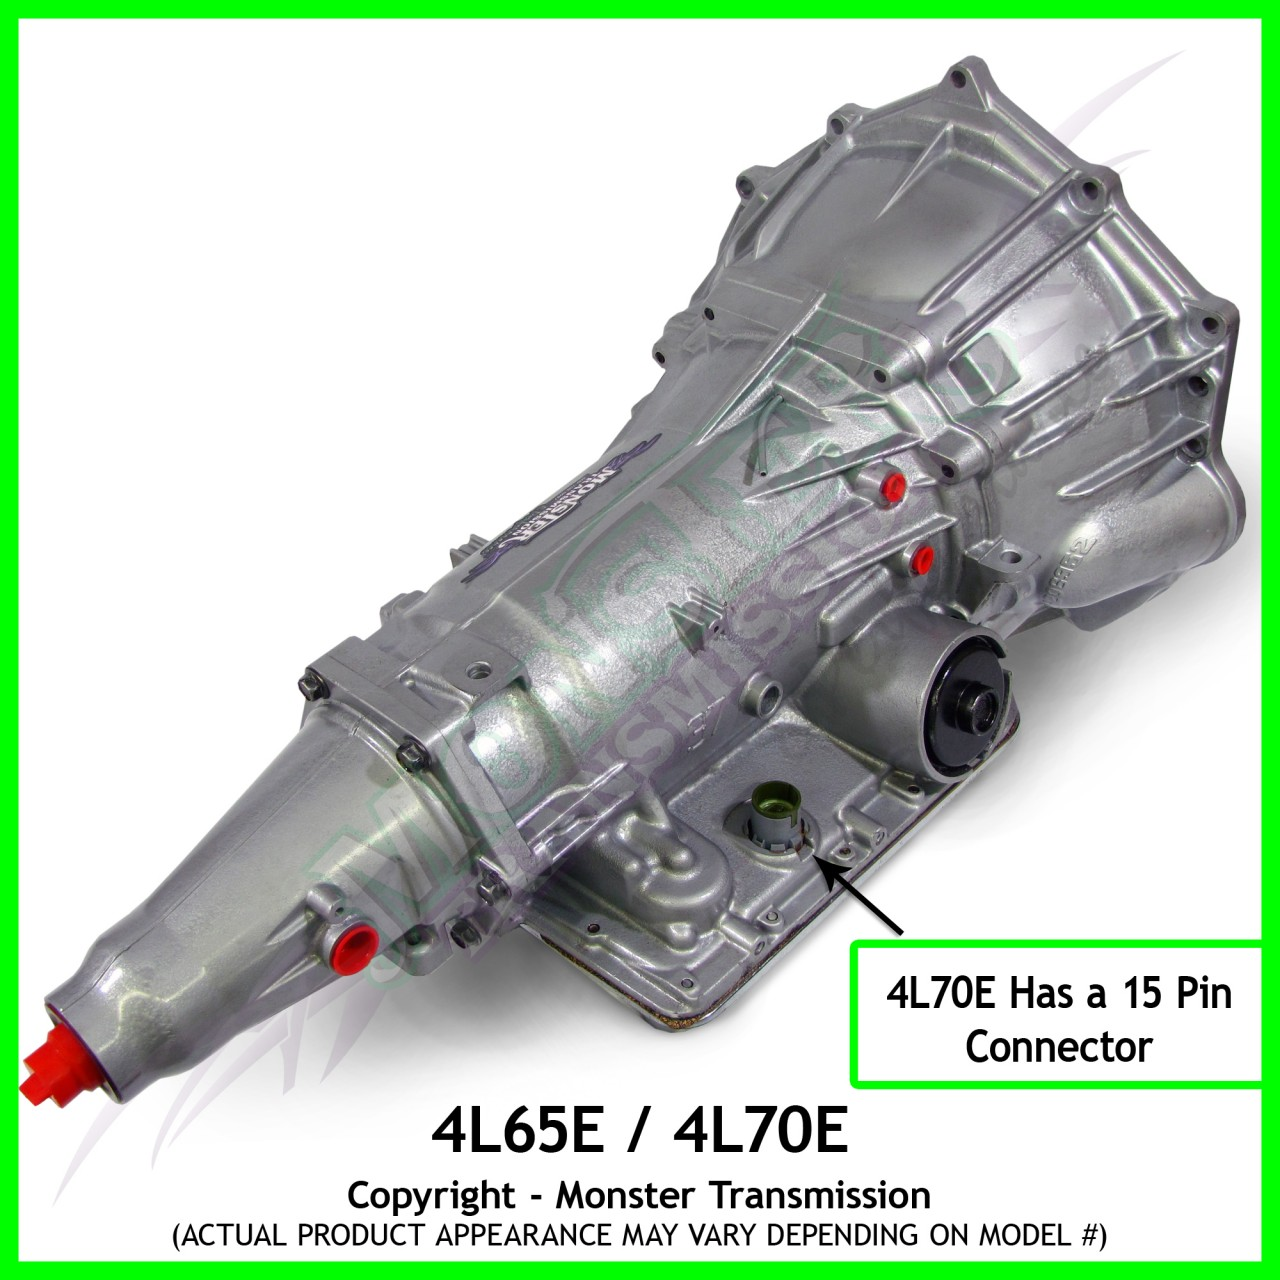 4L70E, 4L70, 4L70E Transmission 4x4, 4L70E Performance Transmission ...